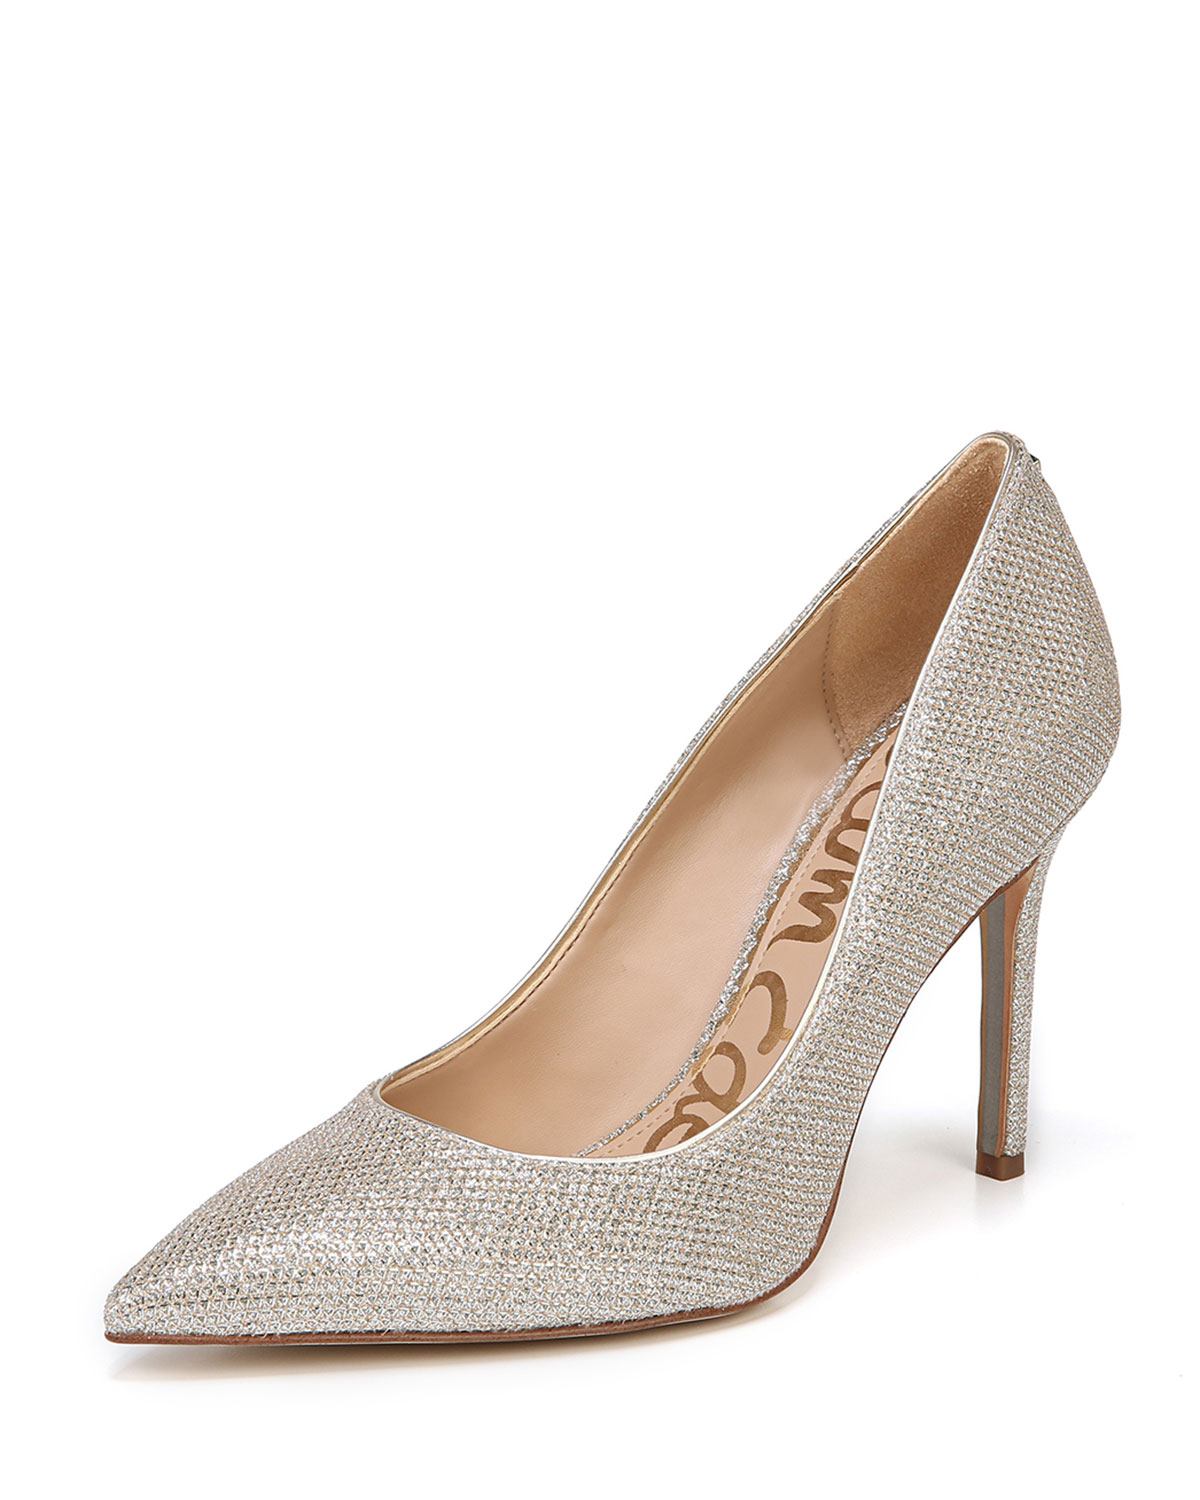 c83114b02 Sam Edelman Hazel Glam Mesh Pointed Pumps